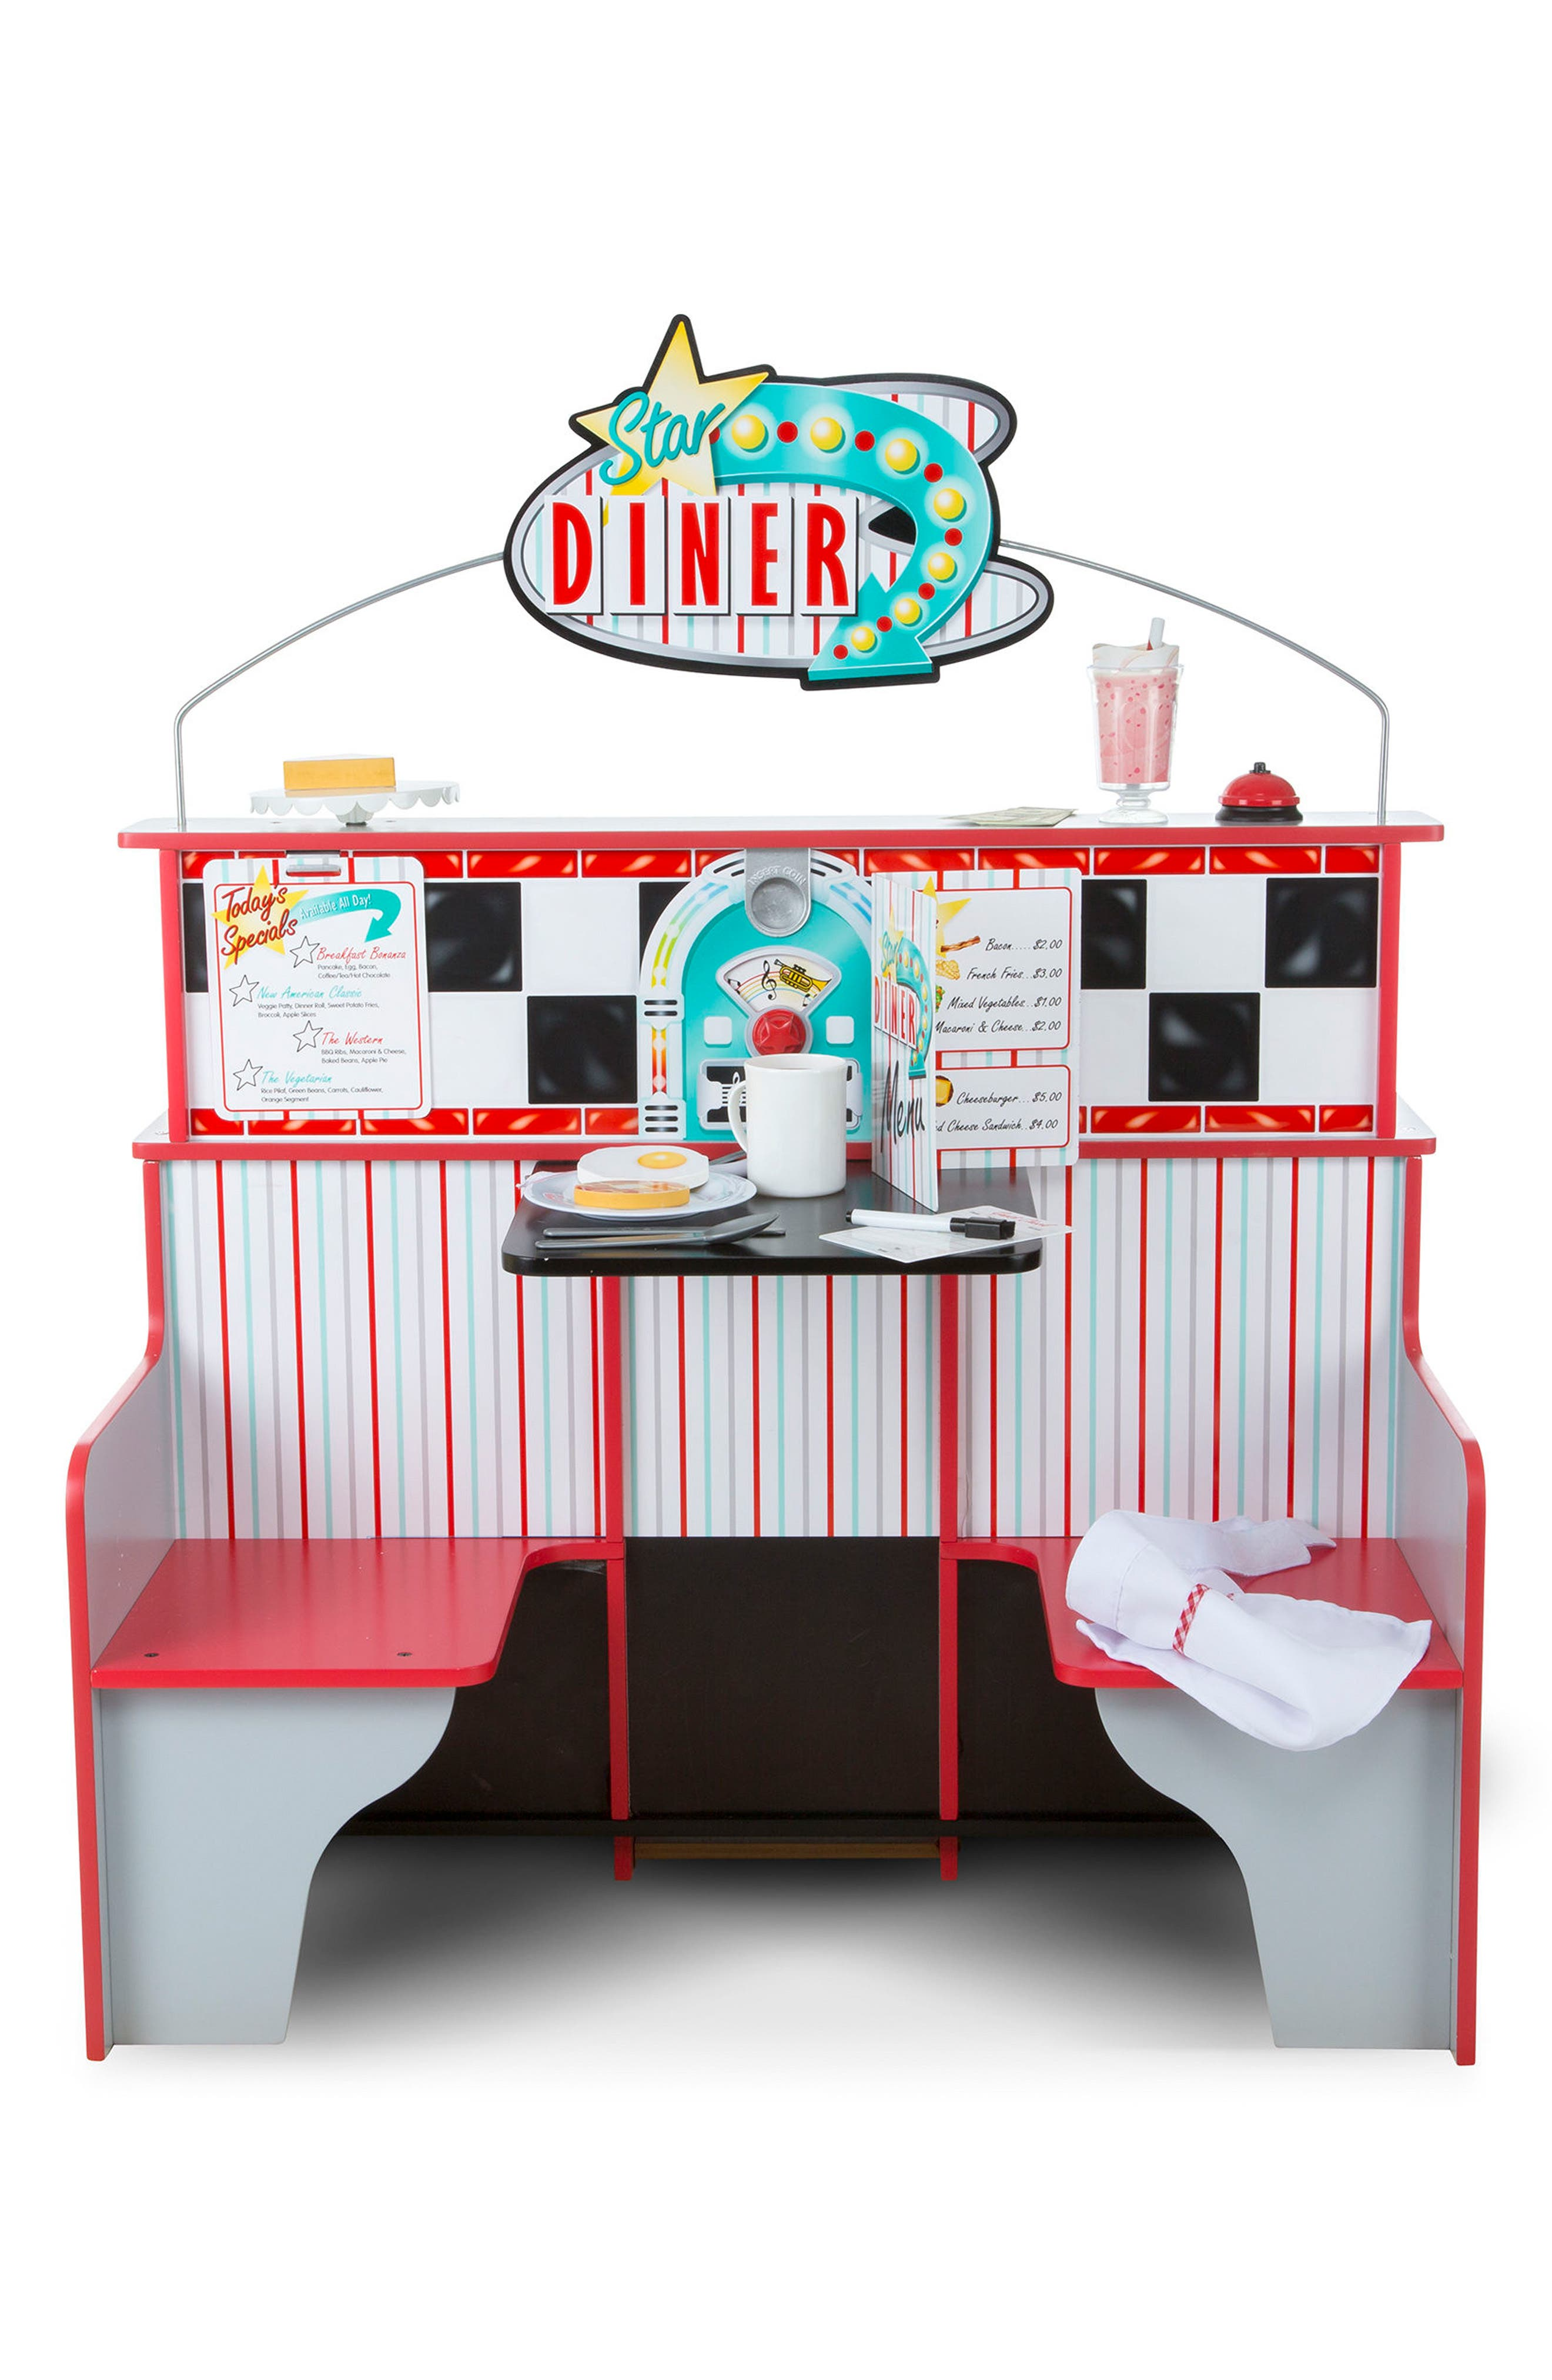 Star Diner Play Scene,                         Main,                         color, White